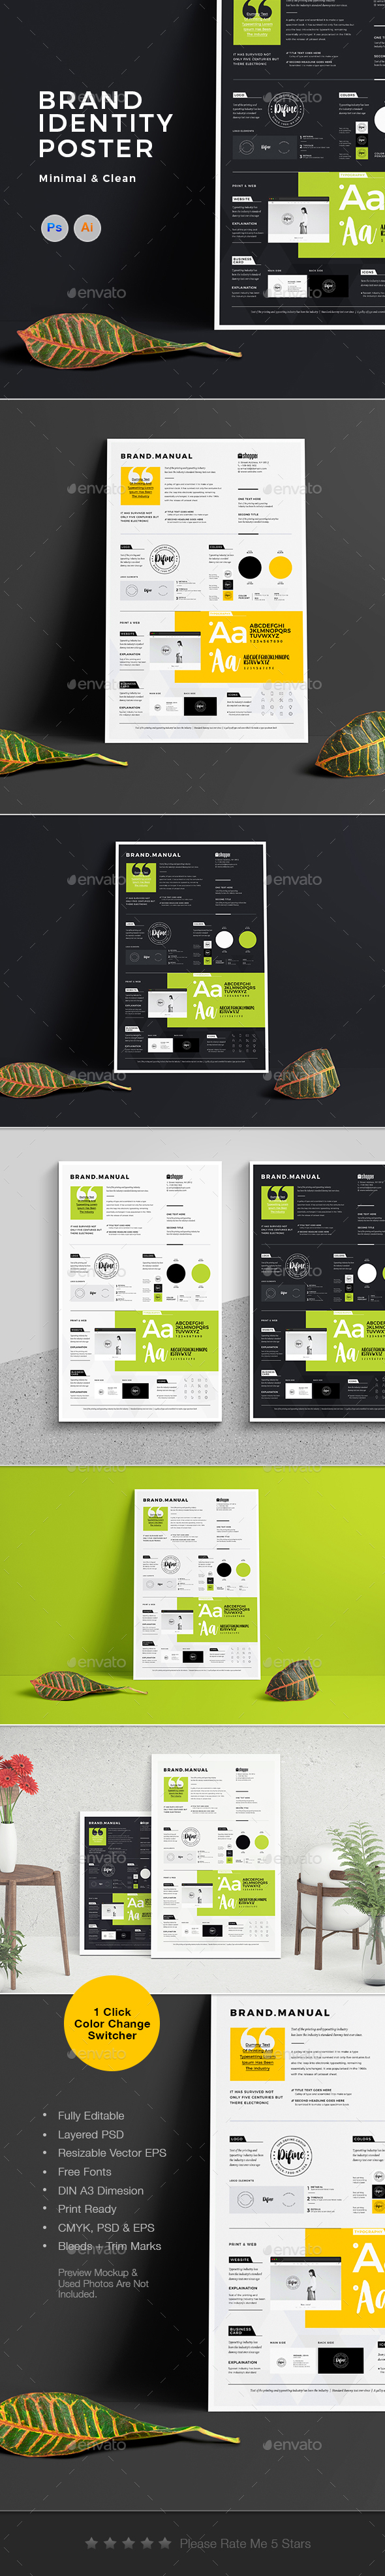 Brand Identity Poster - Corporate Flyers